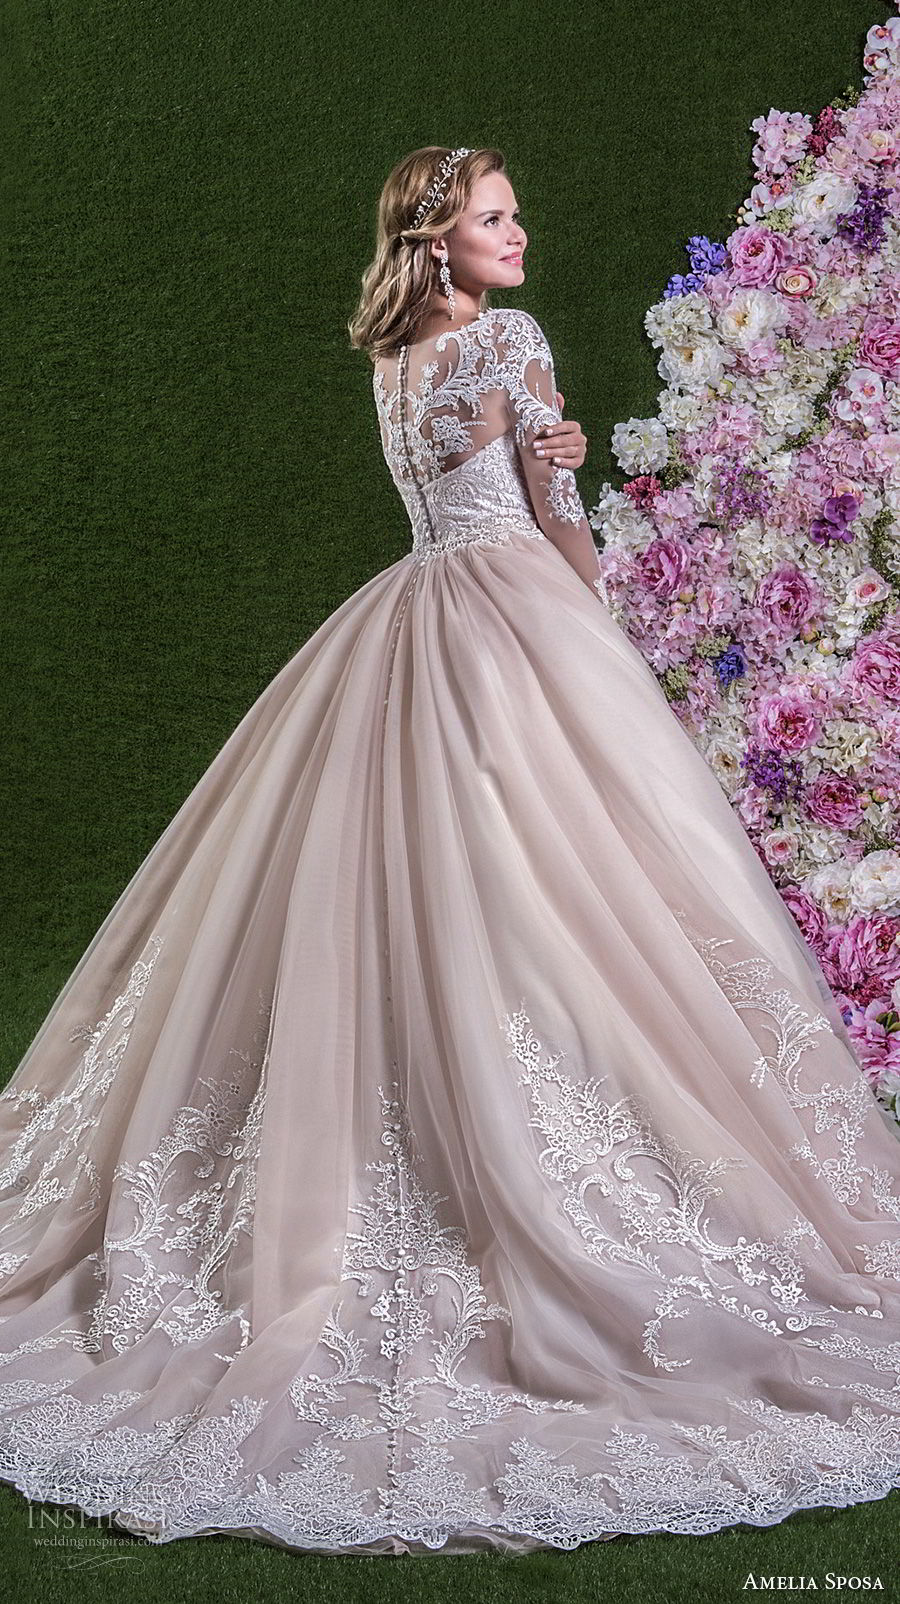 amelia sposa 2018 bridal long sleeves illusion boat sweetheart neckline heavily embellished bodice pink ball gown wedding dream lace back long train (rachele) sdv